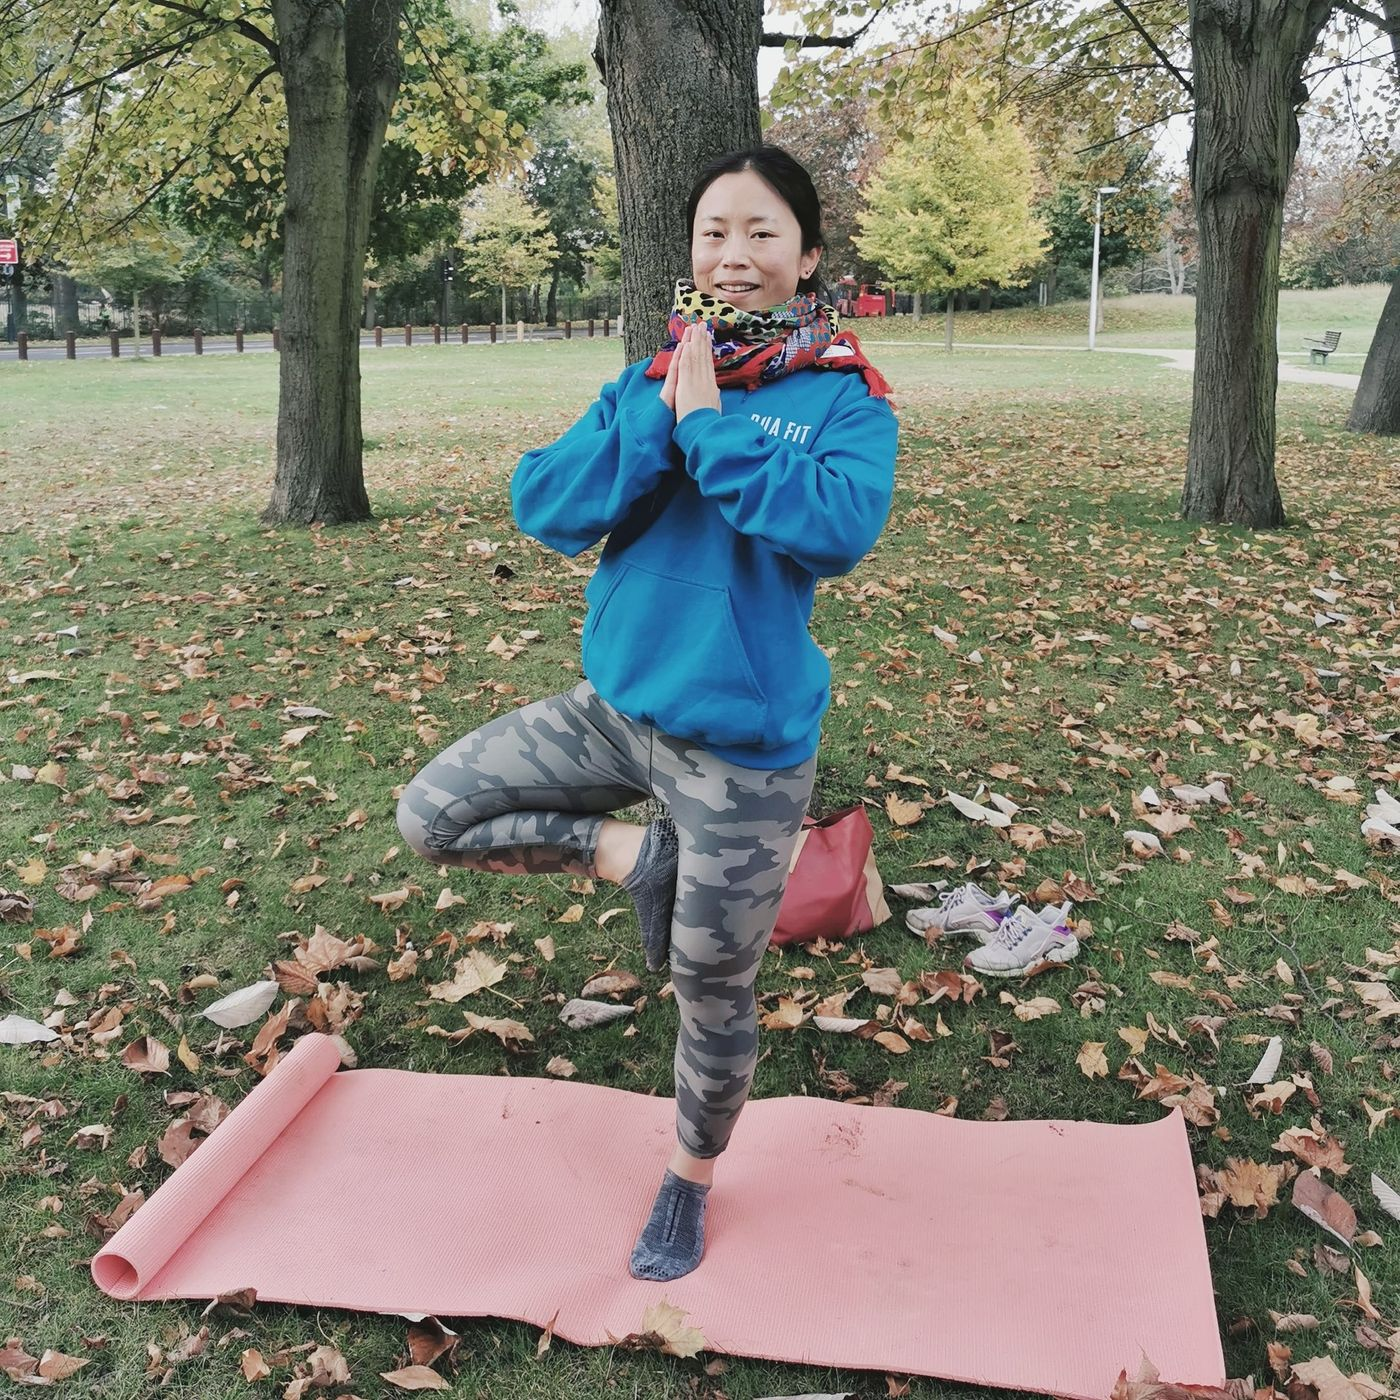 Outdoor classes are back next week!! Check out classes in Kidbrooke and Blackheath https://bua.fit/u/shuntao